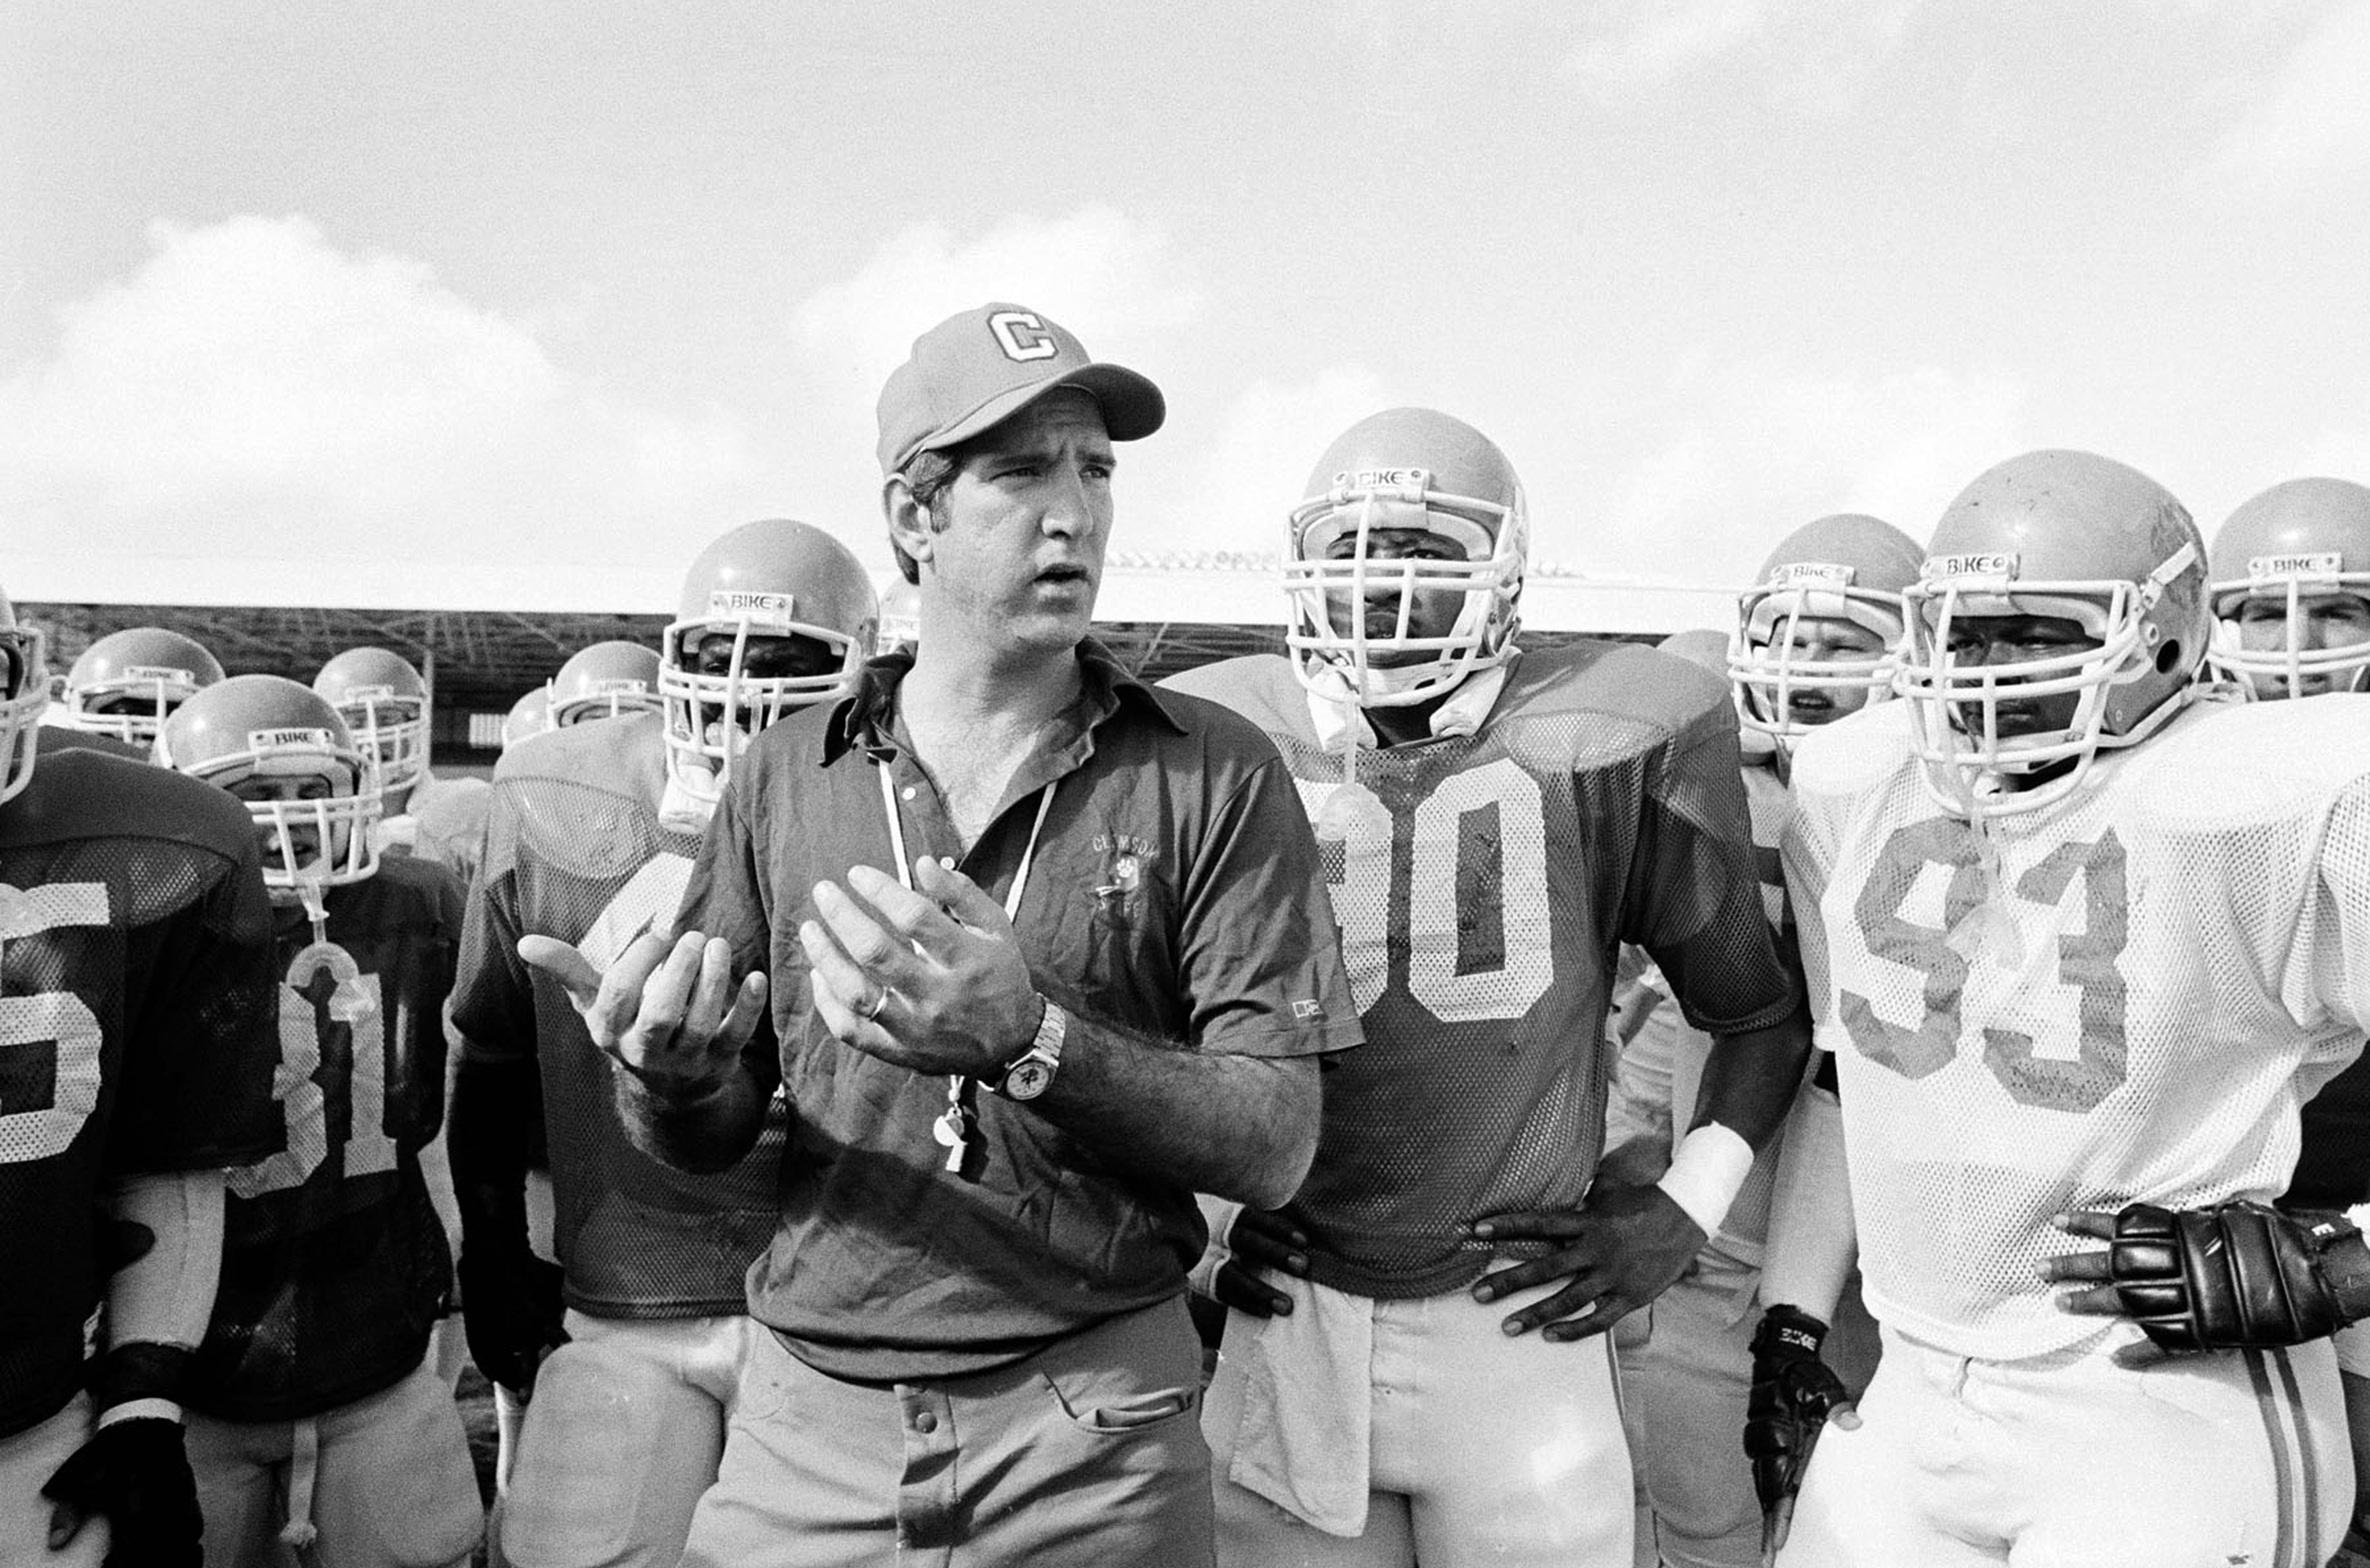 FILE - In this Jan. 1, 1982, file photo, Clemson football coach Danny Ford instructs his team at Tropical stadium in Miami as they warmed up for the NCAA college football Orange Bowl on the way to winning the national championship. Clemson defeated favori